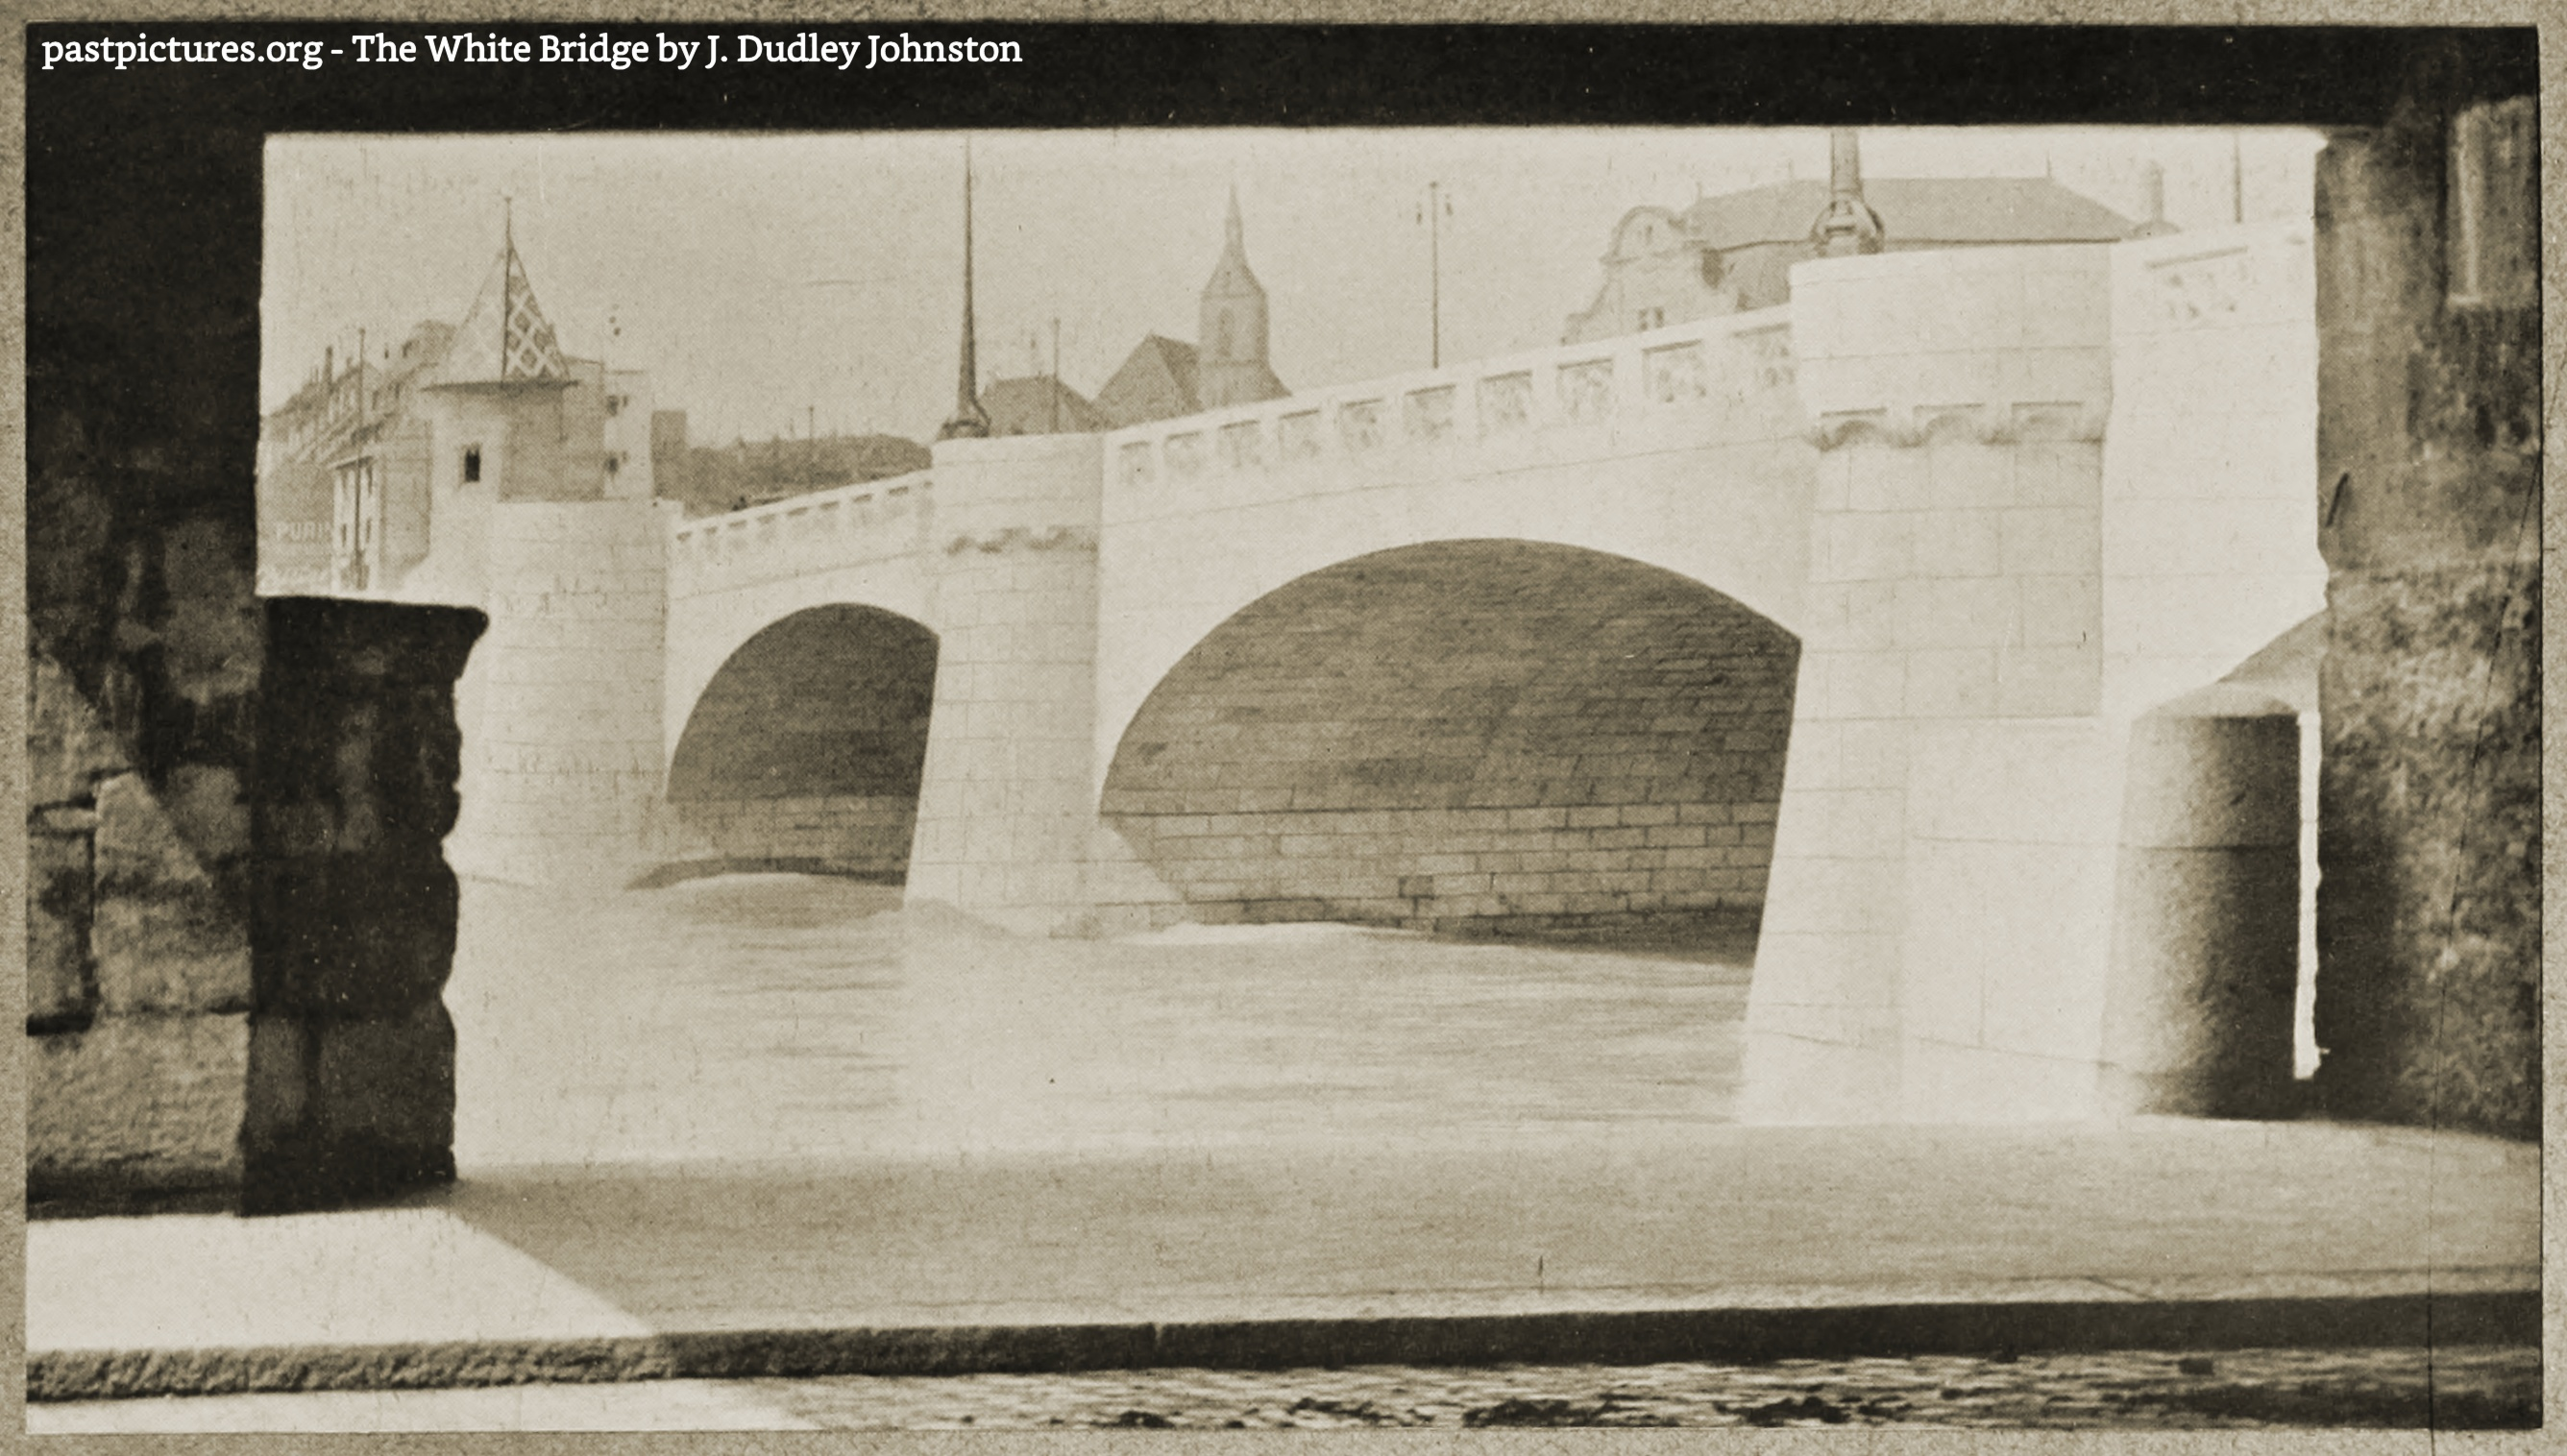 The White Bridge by J. Dudley Johnston about 1900